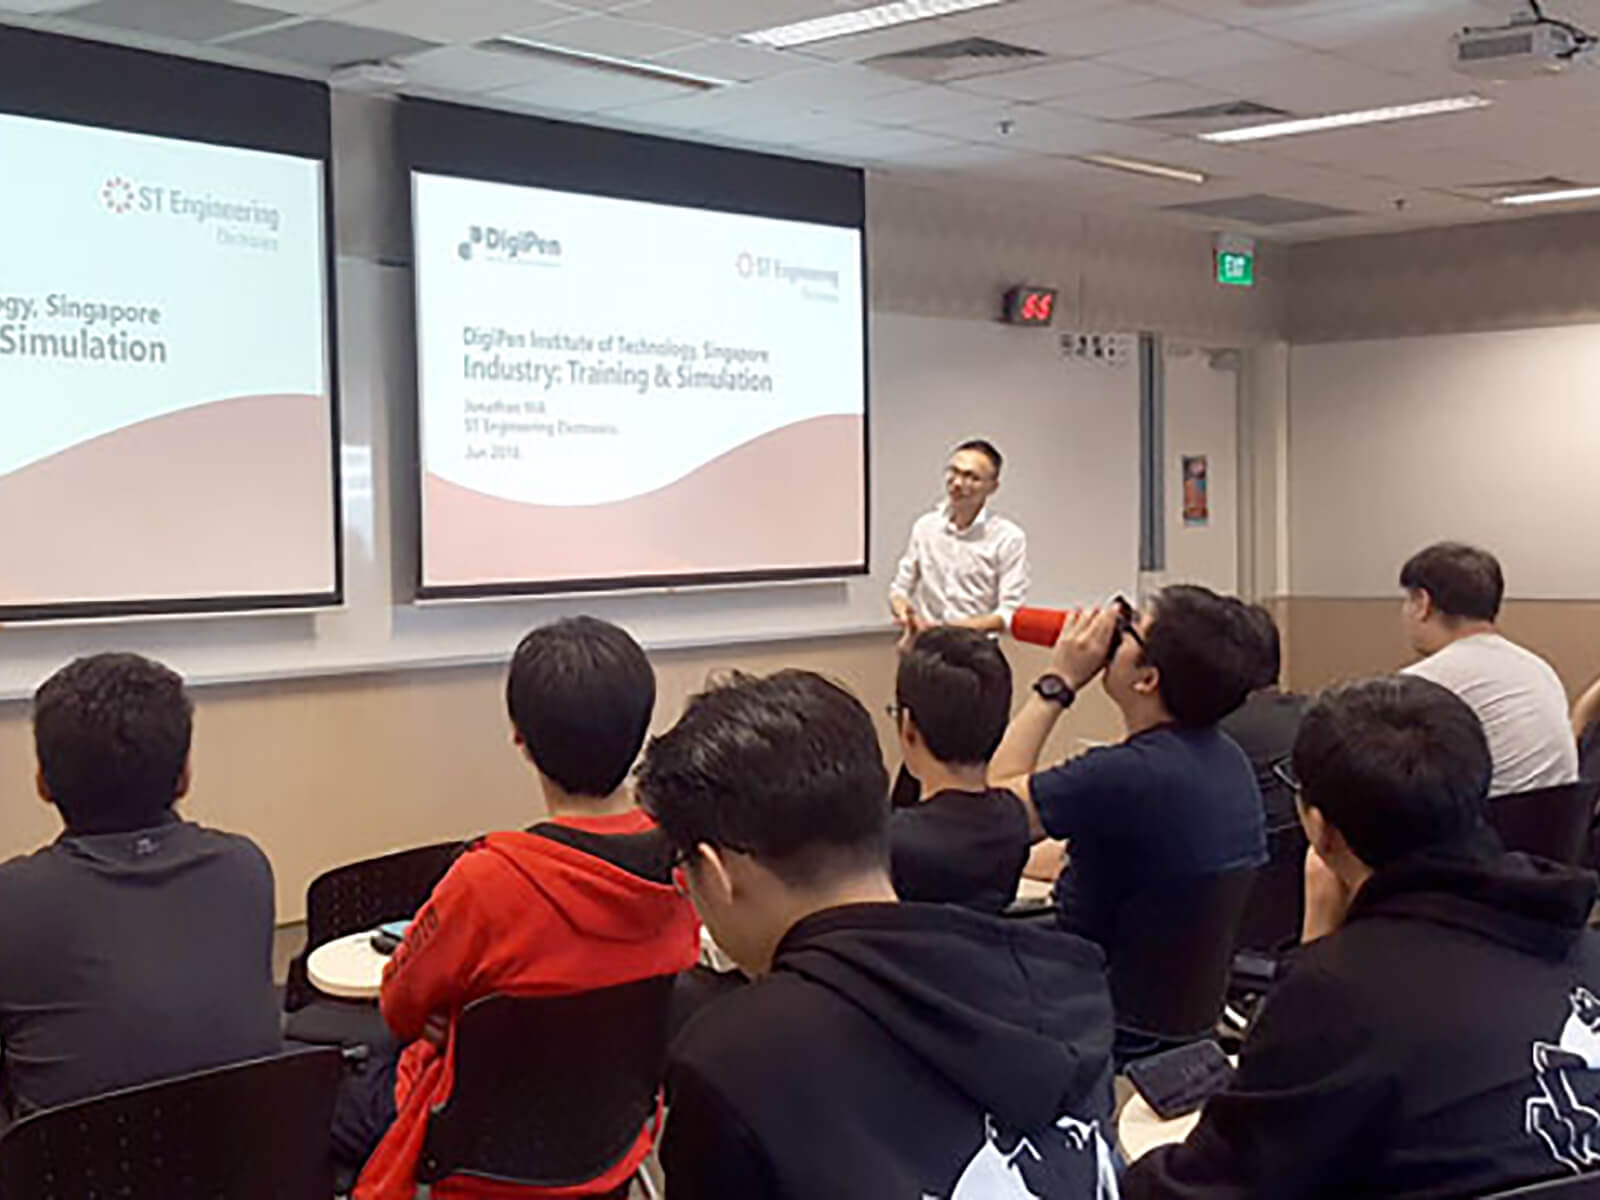 ST Engineering Assistant Division Manager Jonathan Hia speaks in front of a class of DigiPen (Singapore) students